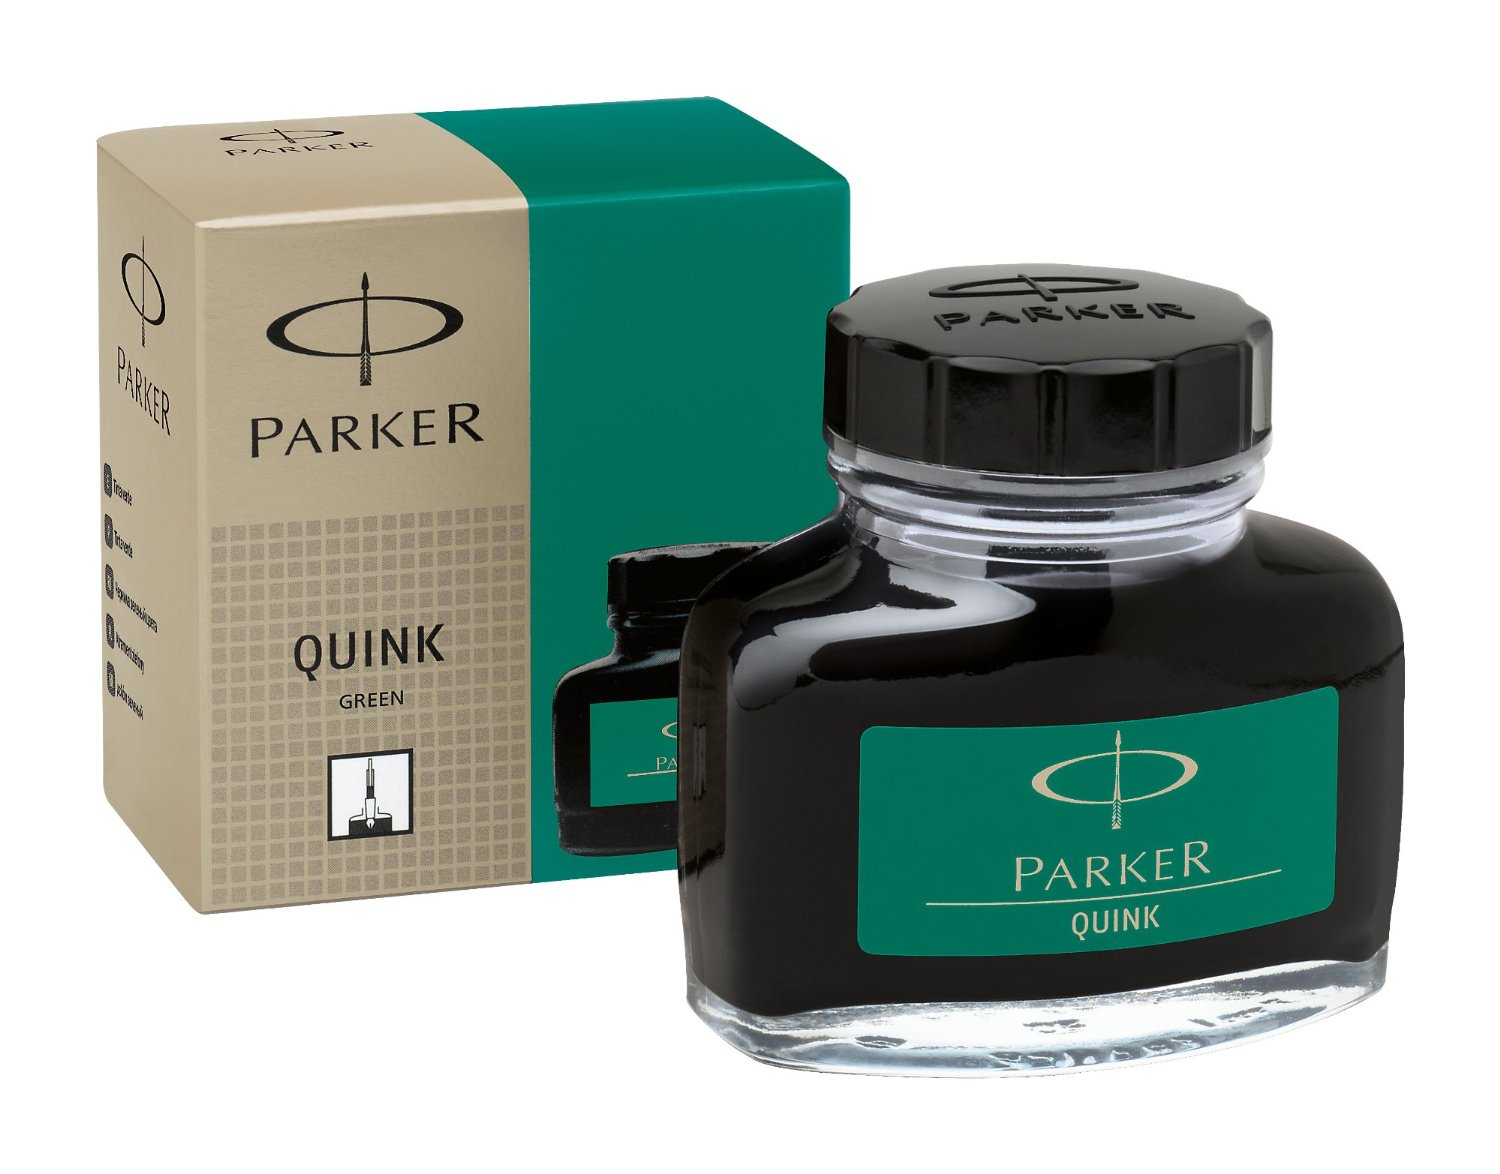 Parker Super Quink Permanent Ink for Parker Pens, 2-oz. Bottle, Green Ink